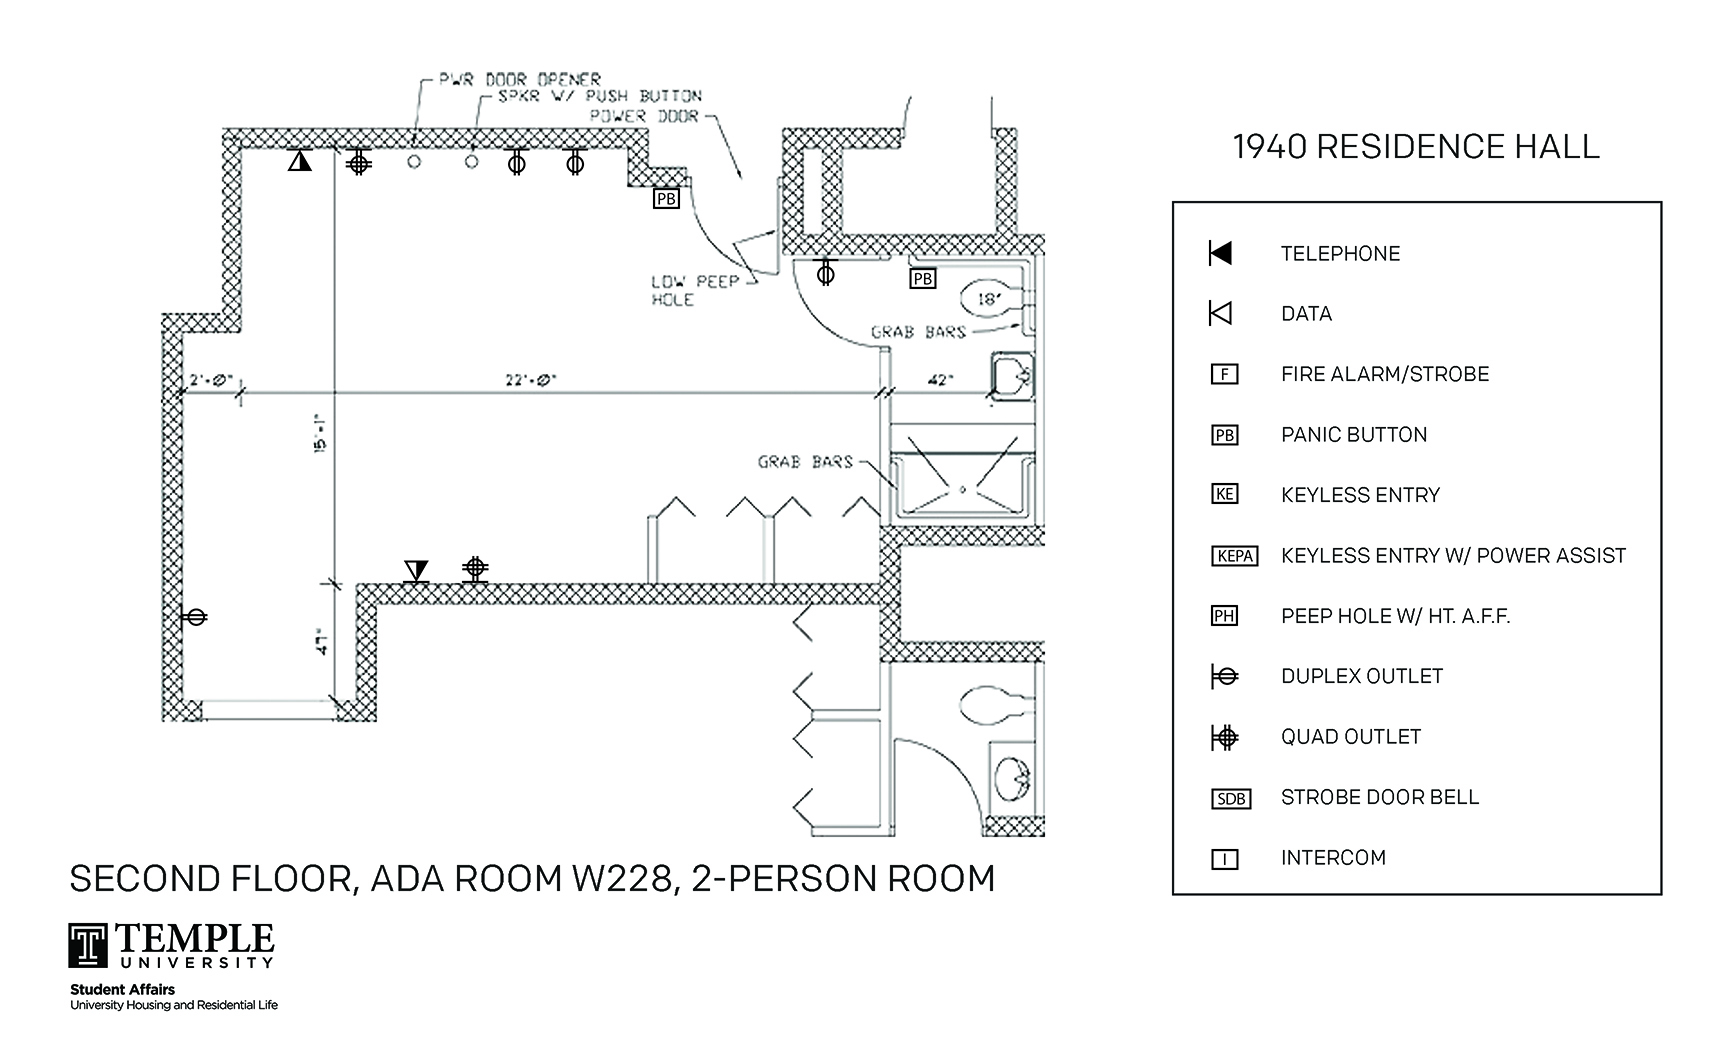 Accessible Room Diagrams: 2 person, 1 bedroom Suite - W228